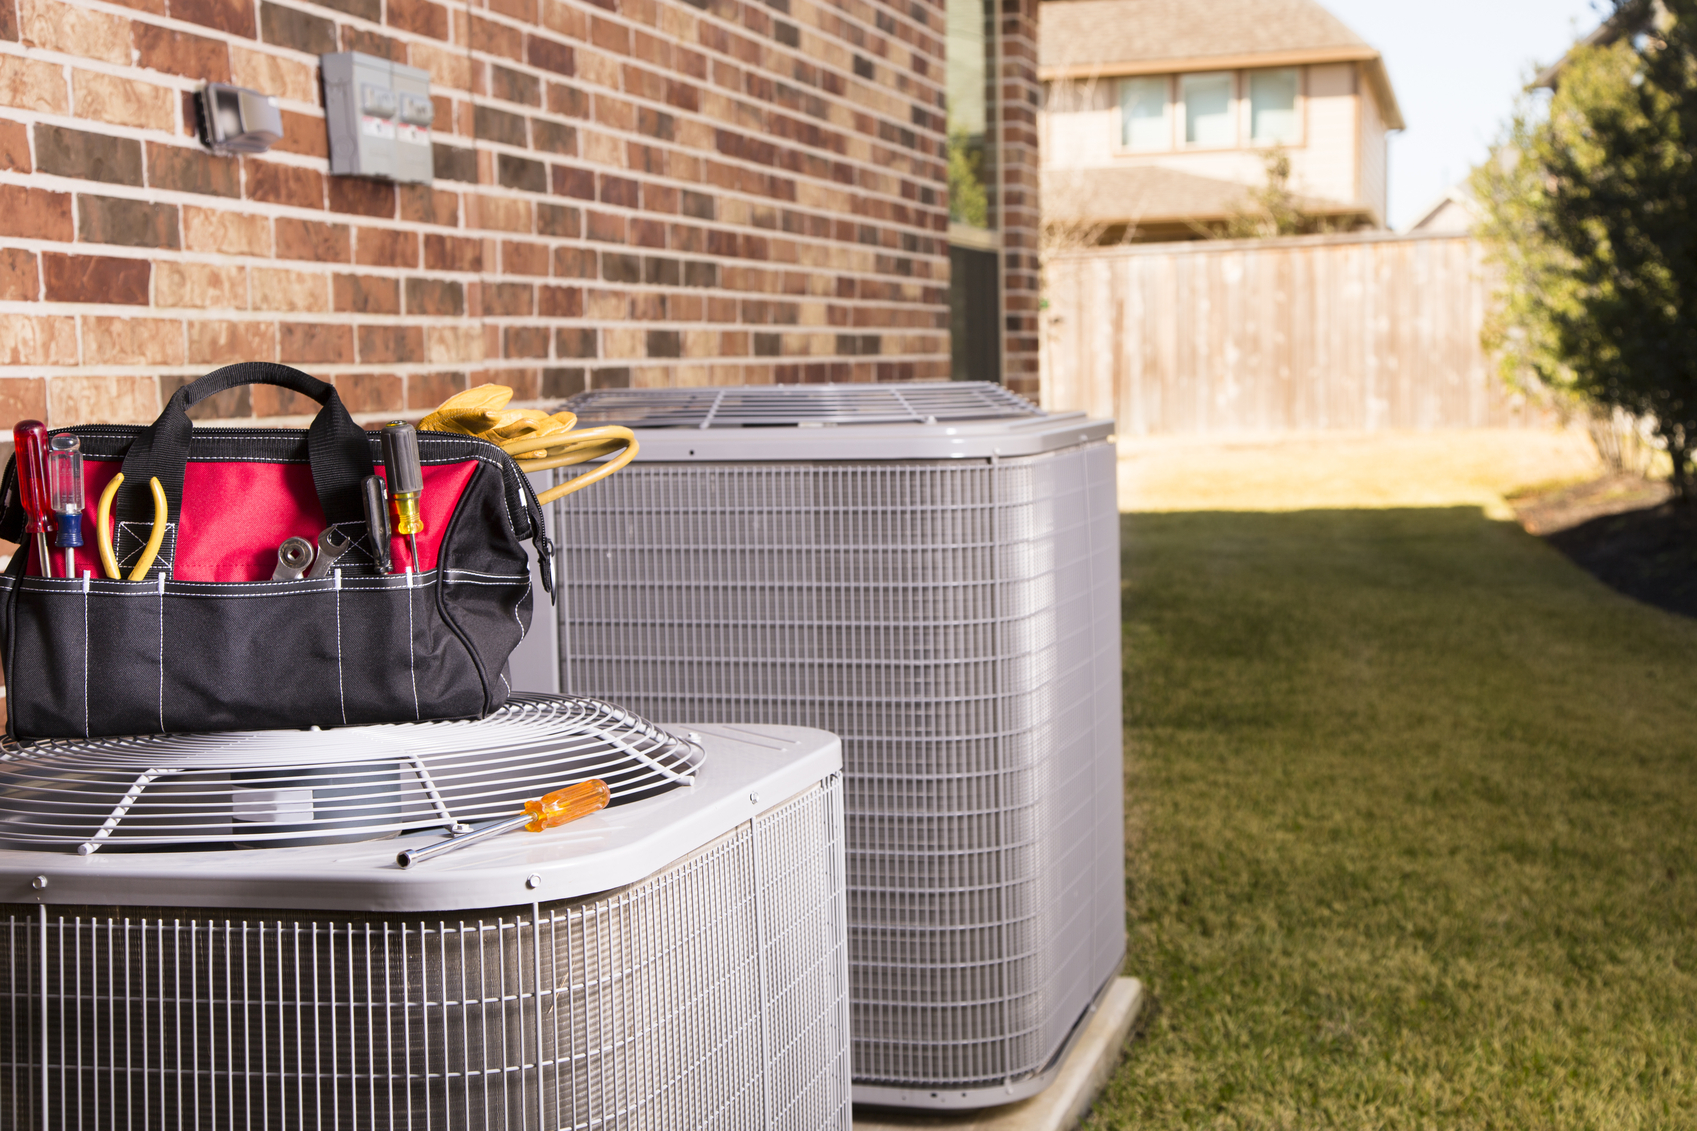 Service Industry: Work tools, air conditioners. Outside residential home. Summer